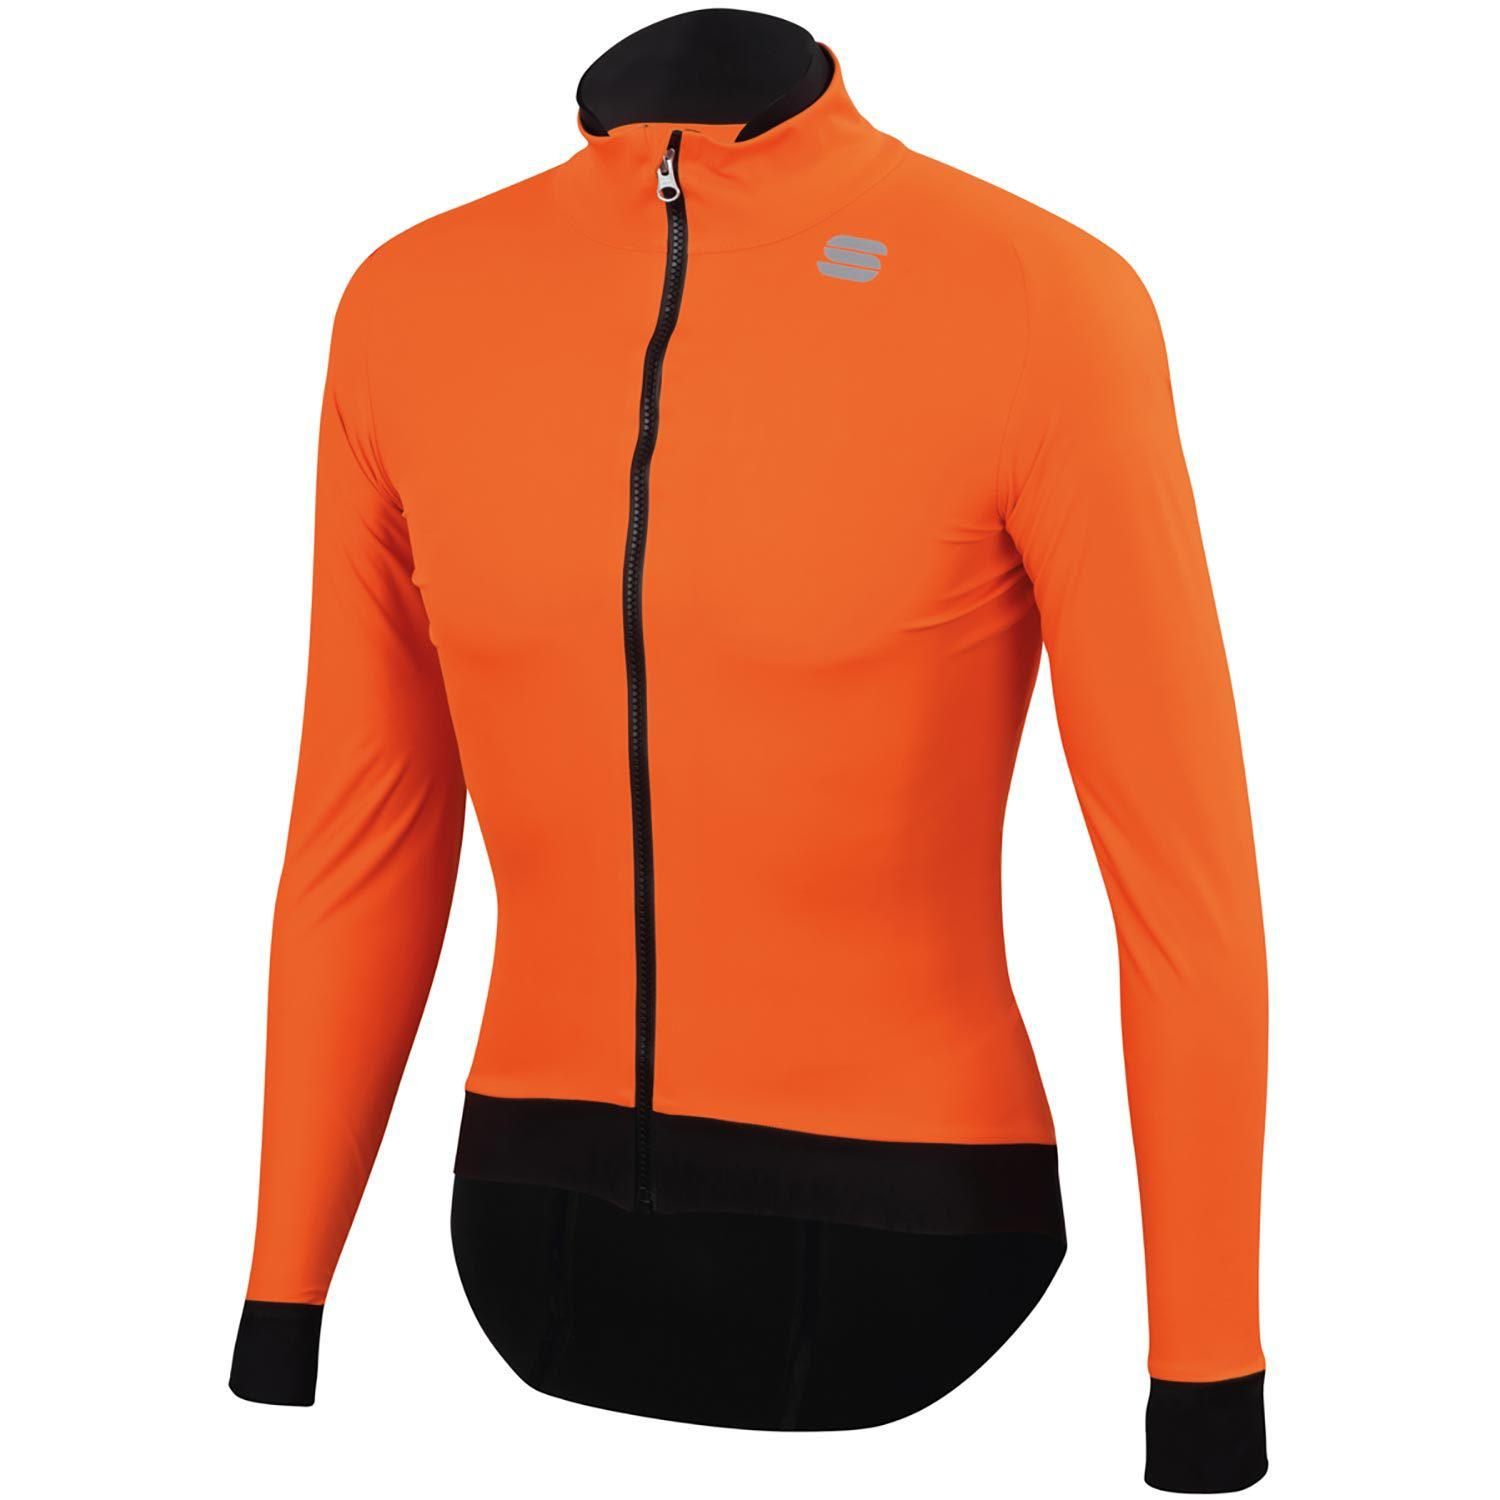 Sportful-Sportful Fiandre Pro Jacket-Orange SDR-S-SF195008502-saddleback-elite-performance-cycling